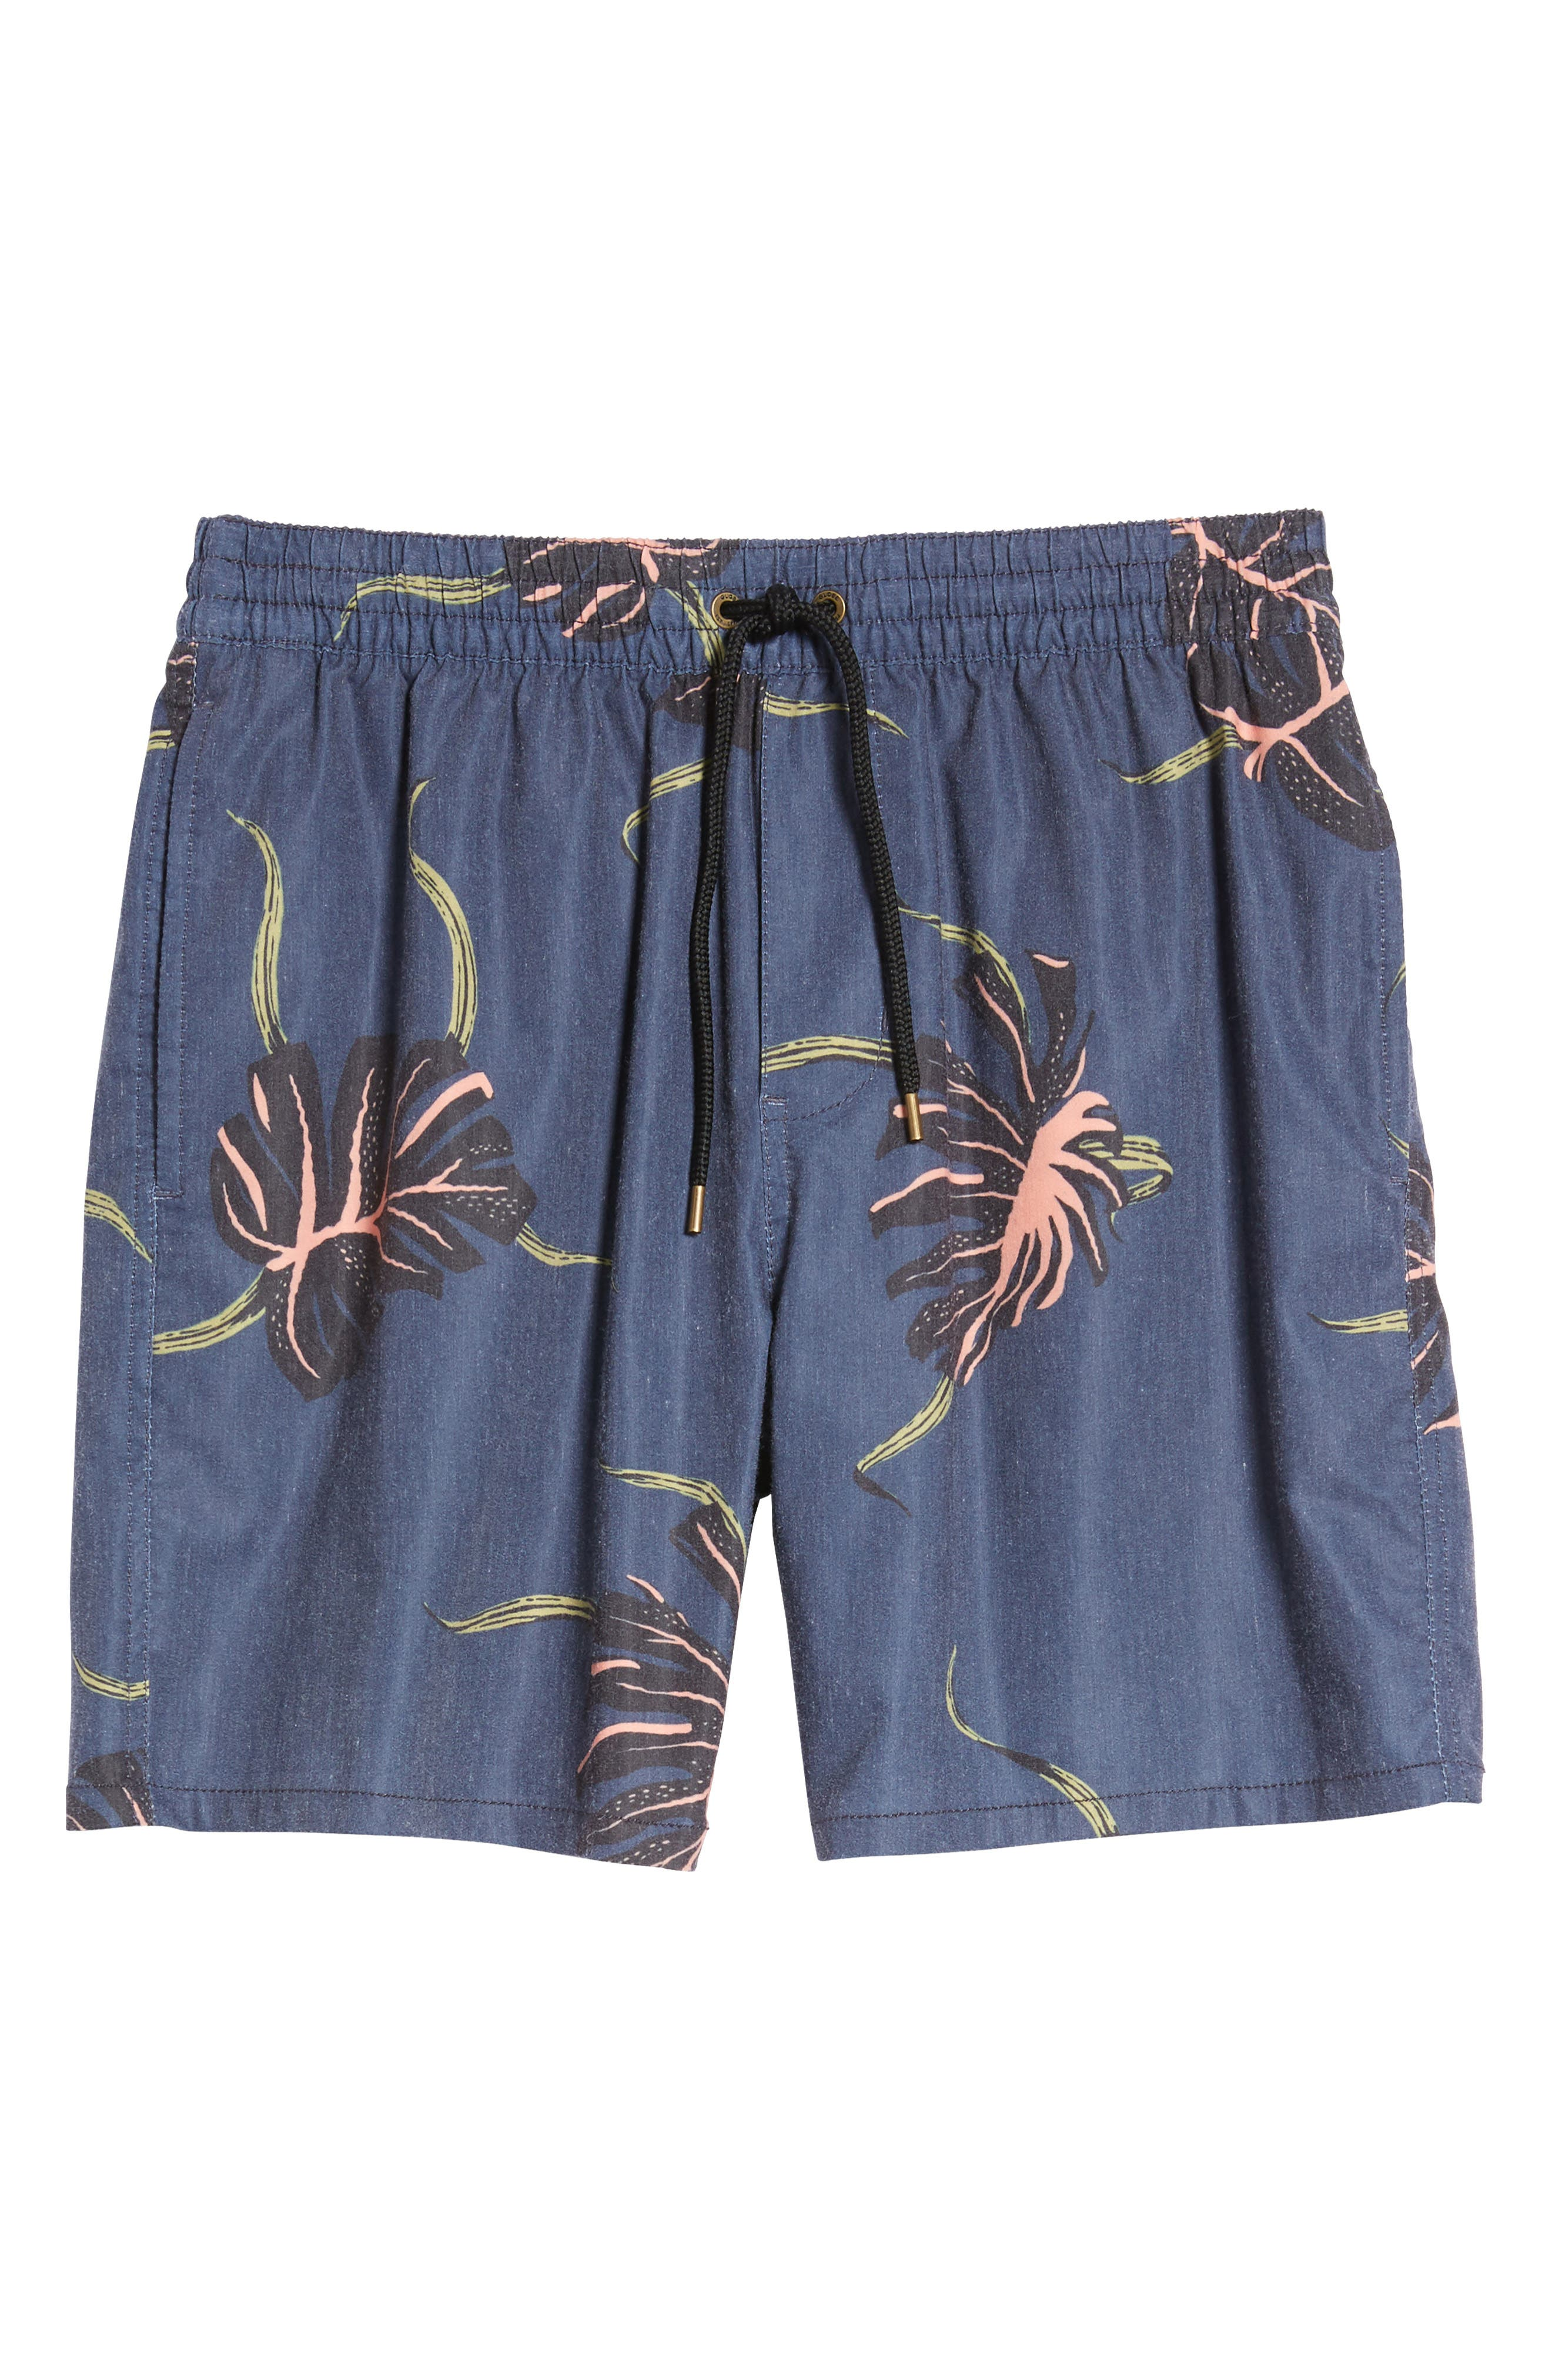 Pointer Pool Shorts,                             Alternate thumbnail 6, color,                             Moonlight Blue